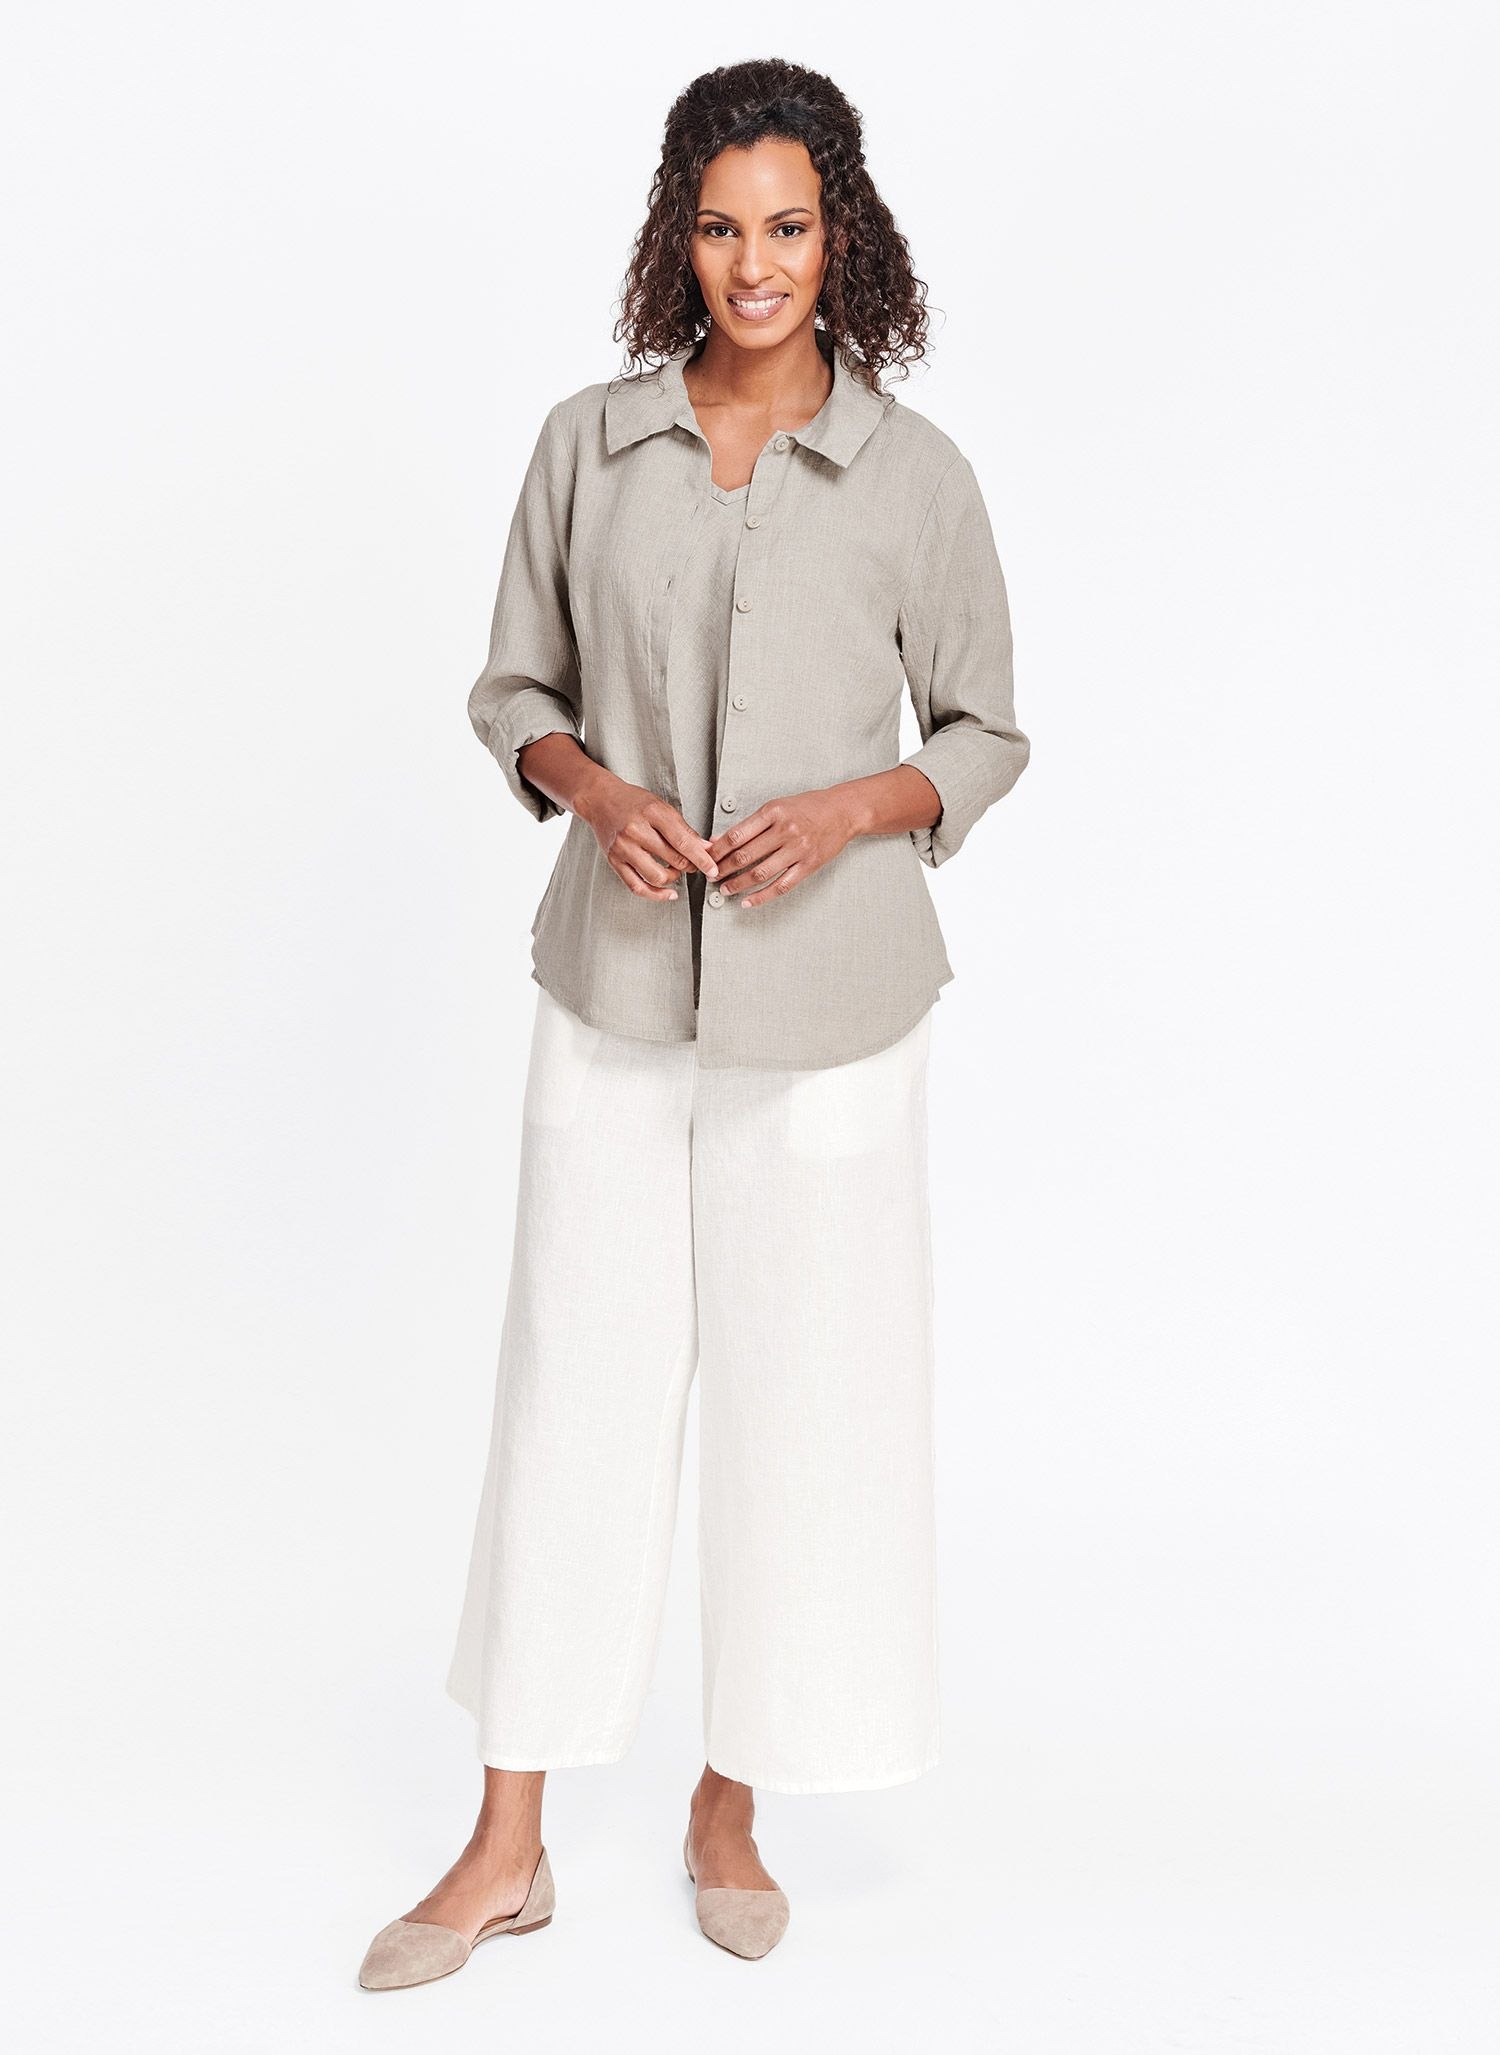 A wide leg and flat front makes for a flattering 100